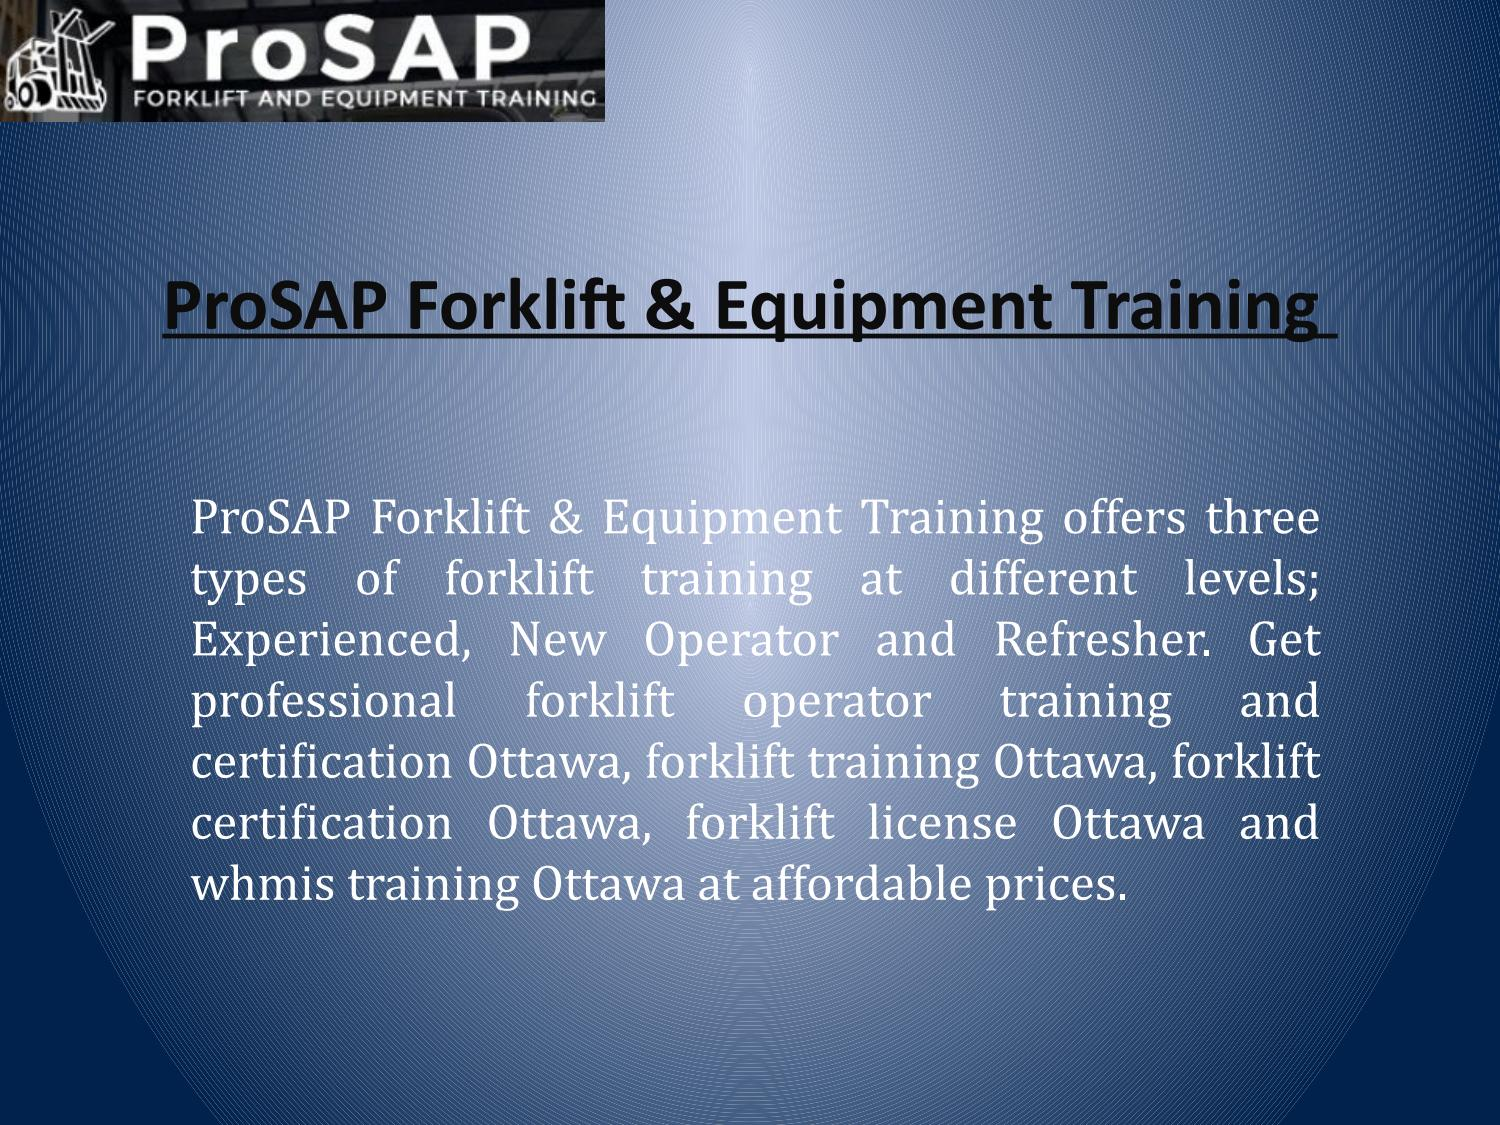 How To Search The Best Place For Forklift Training And Certification